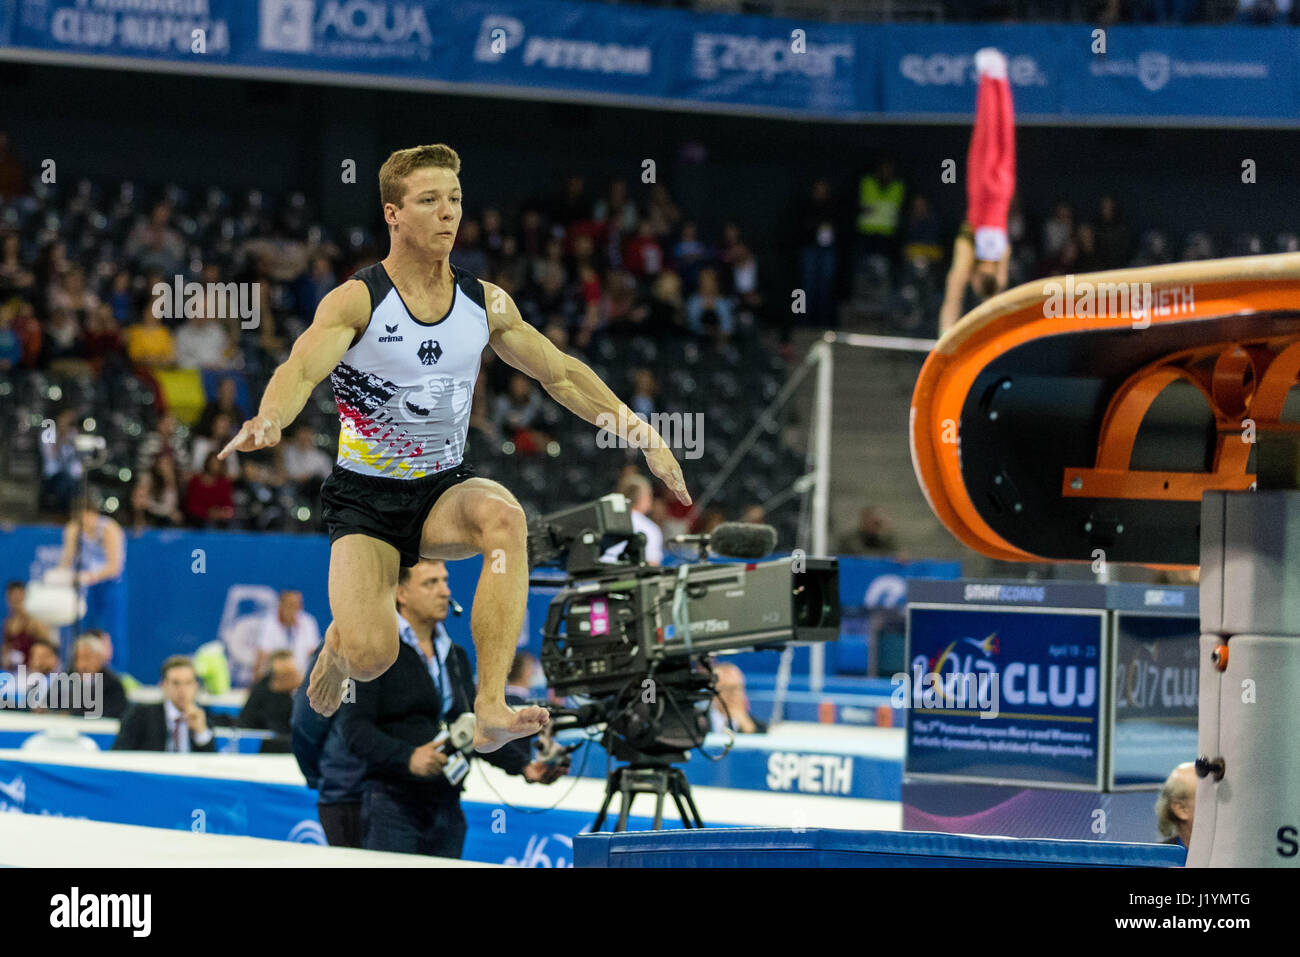 Cluj Napoca, Romania. 21st Apr, 2017. Philipp Herder from Germany performs at the vault at the UEG European Championships Stock Photo